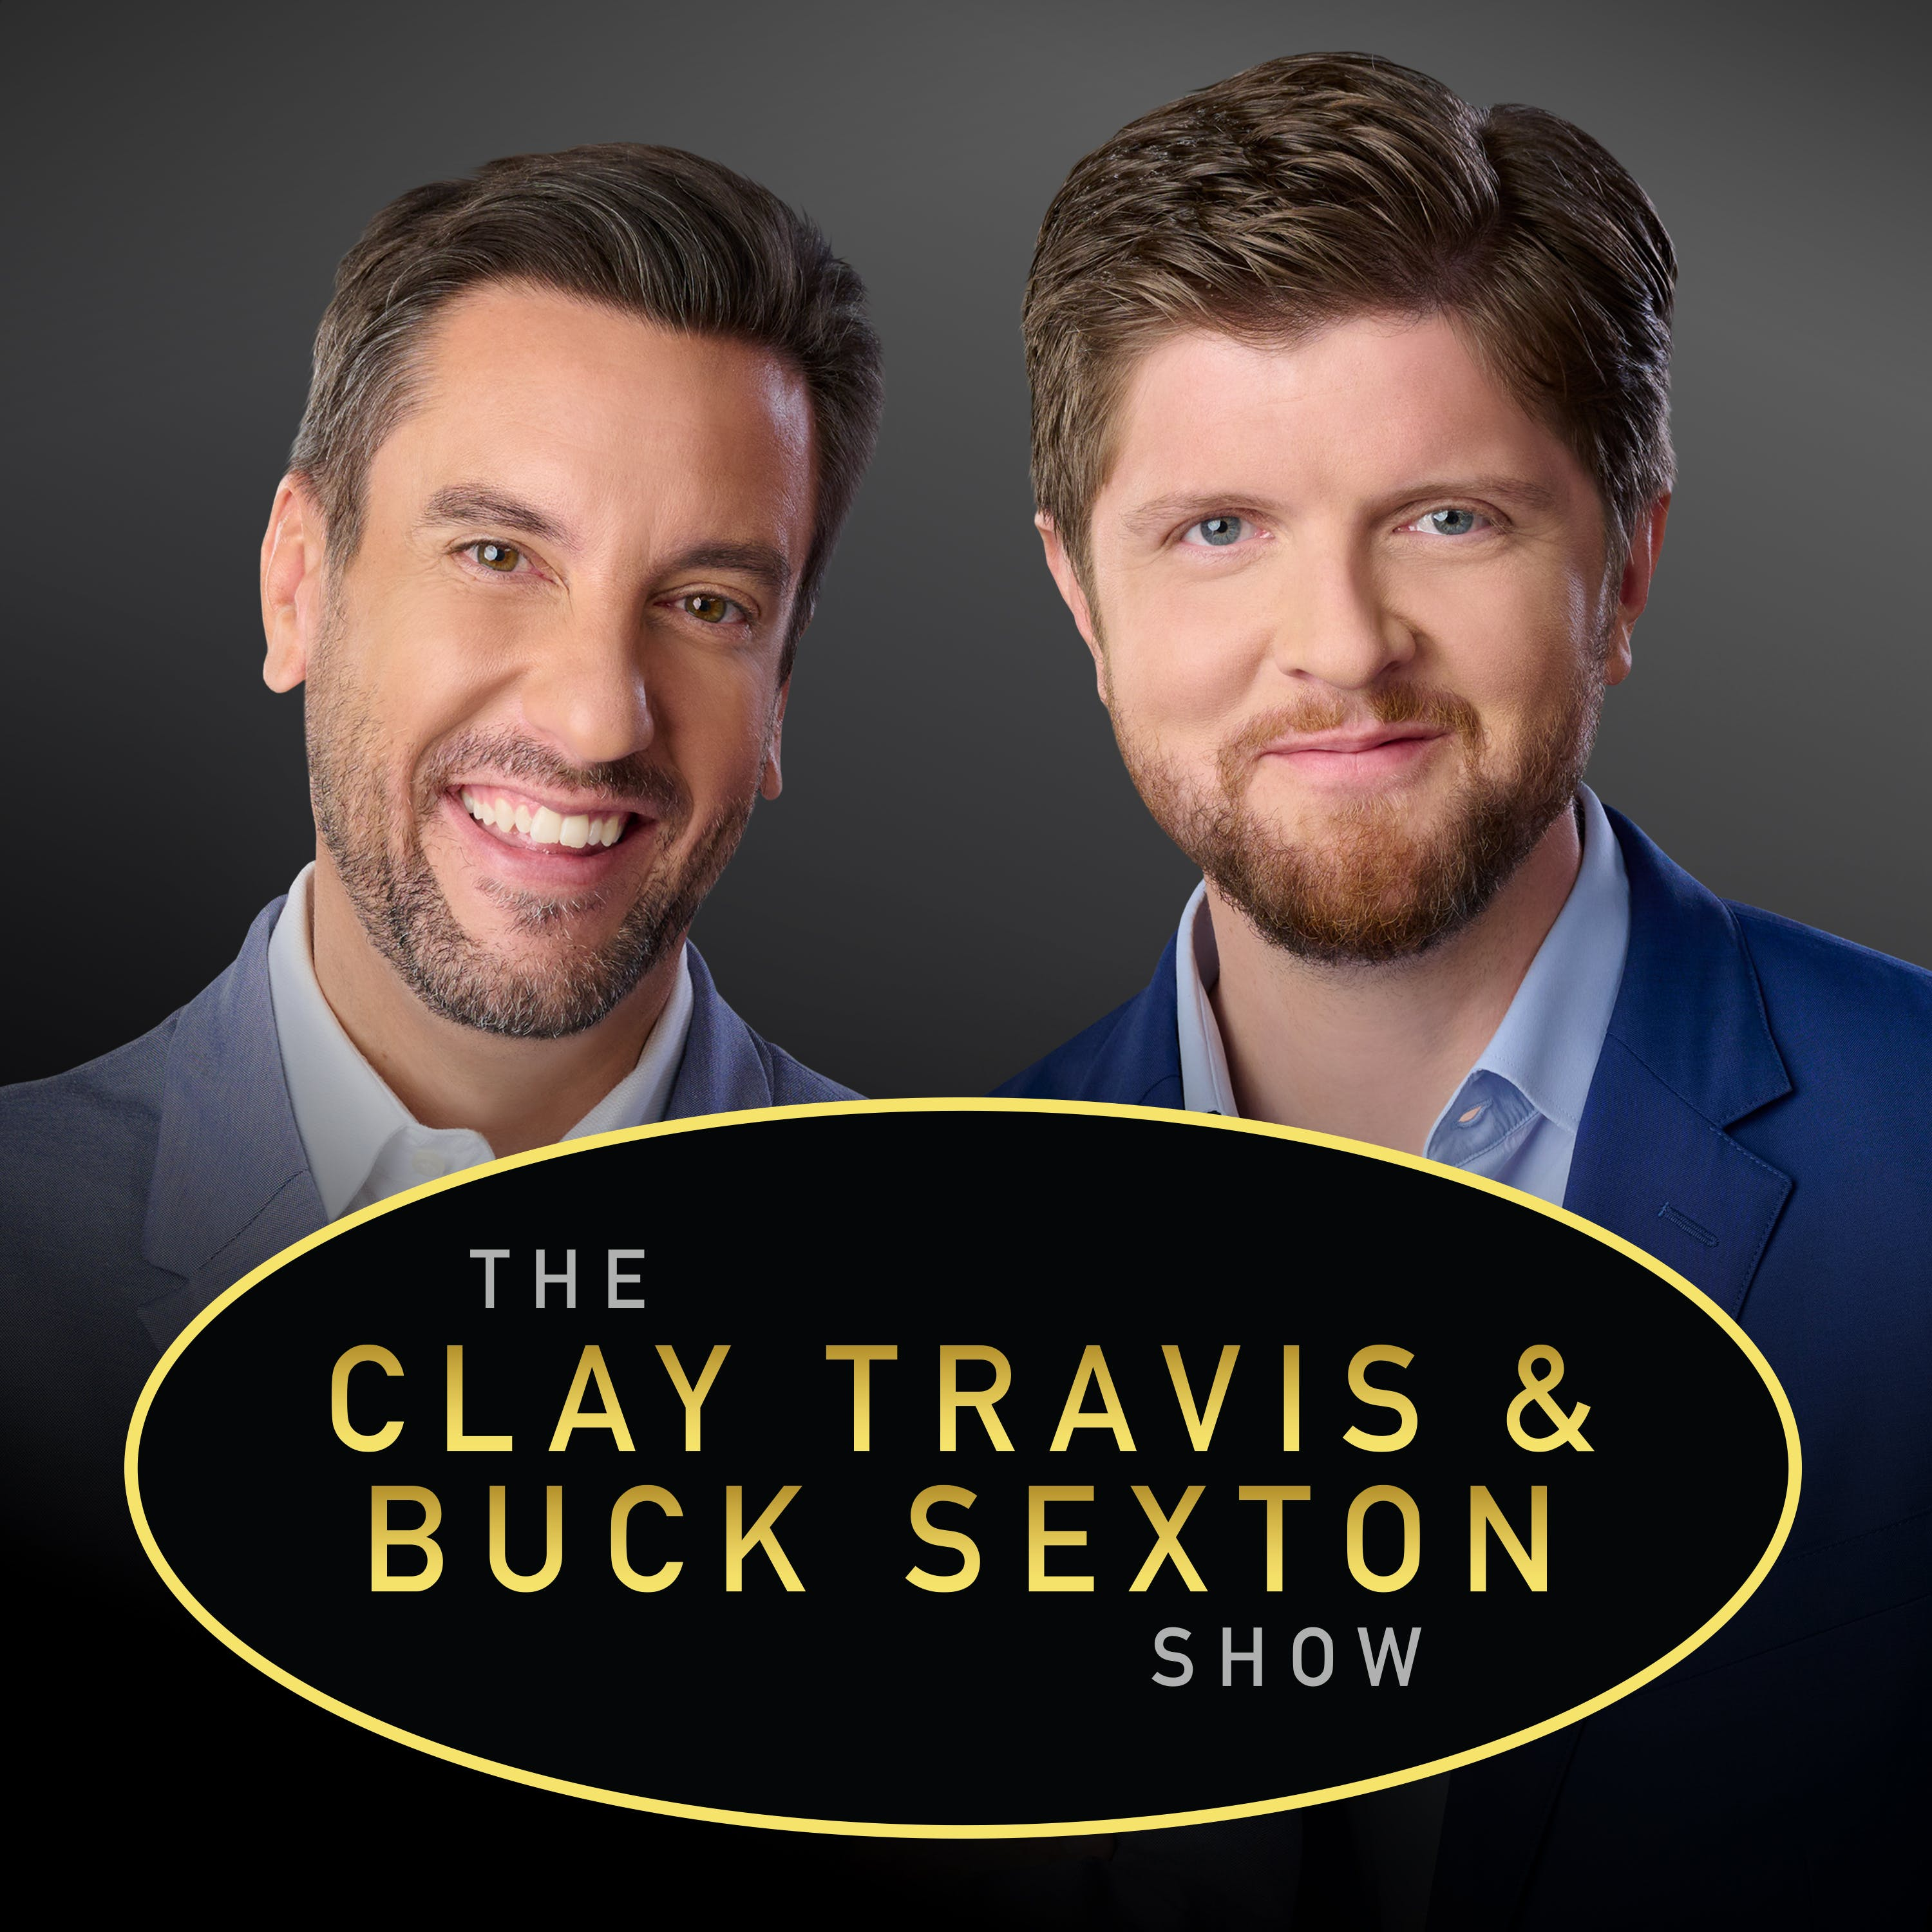 Clay Travis and Buck Sexton Show H1 – Sep 16 2021